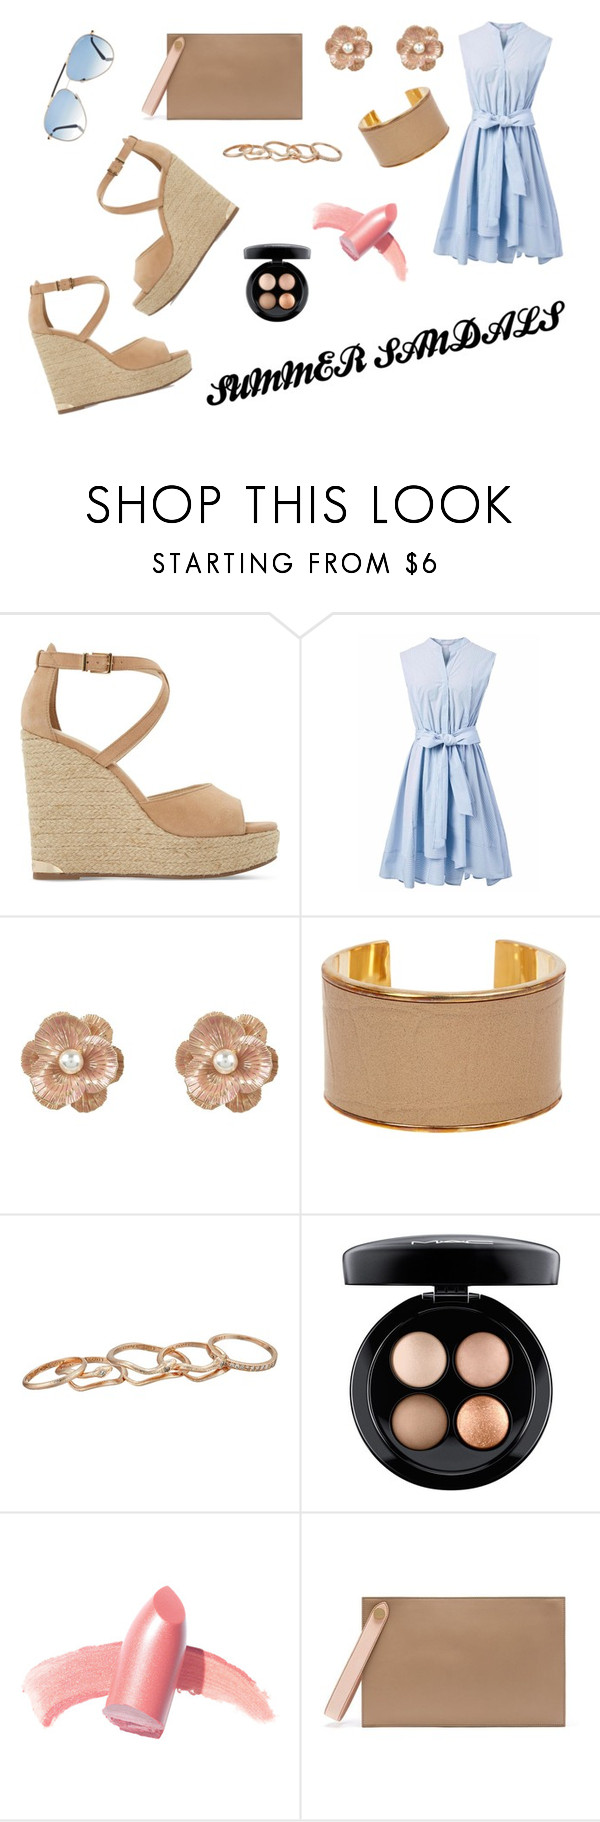 """""""Summer Sandals Contest Entry"""" by skylar-j-ramsay ❤ liked on Polyvore featuring Dune, Chicwish, New Look, BaubleBar, Kendra Scott, MAC Cosmetics, Elizabeth Arden, Mulberry, Tom Ford and contest"""